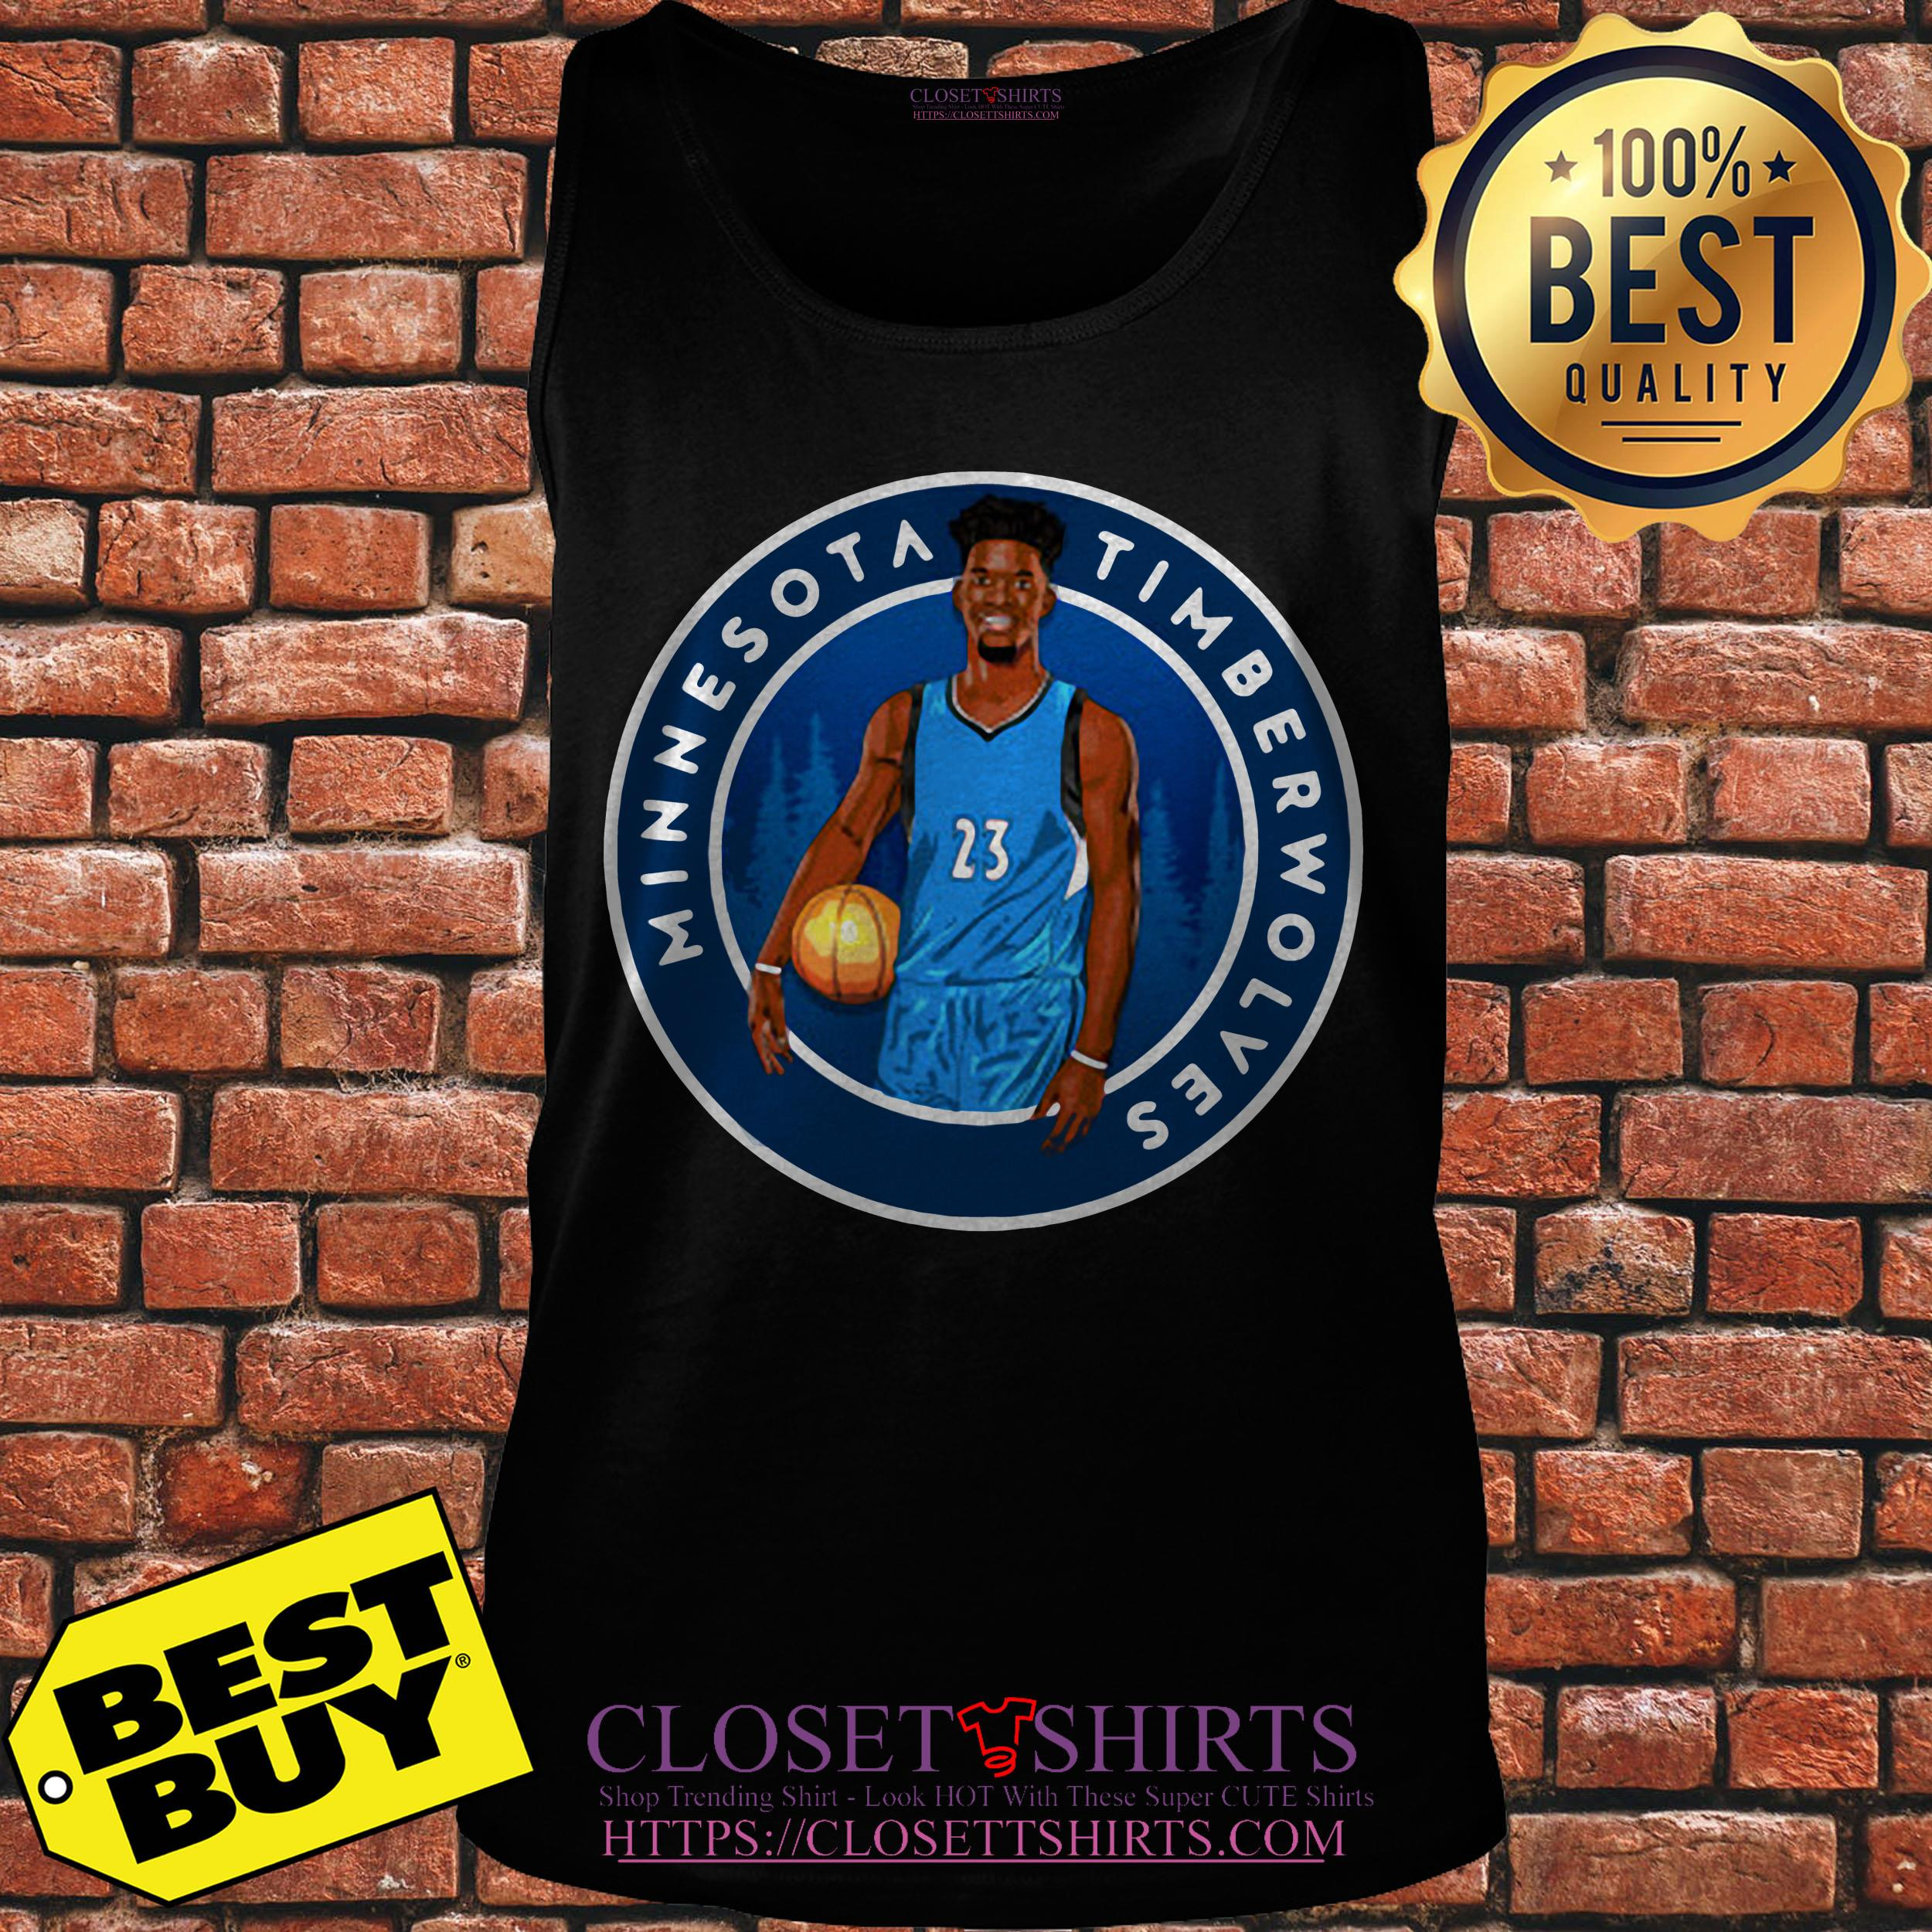 the latest 23325 2210b Jimmy Butler Minnesota Timberwolves Youth NBA Swingman ...